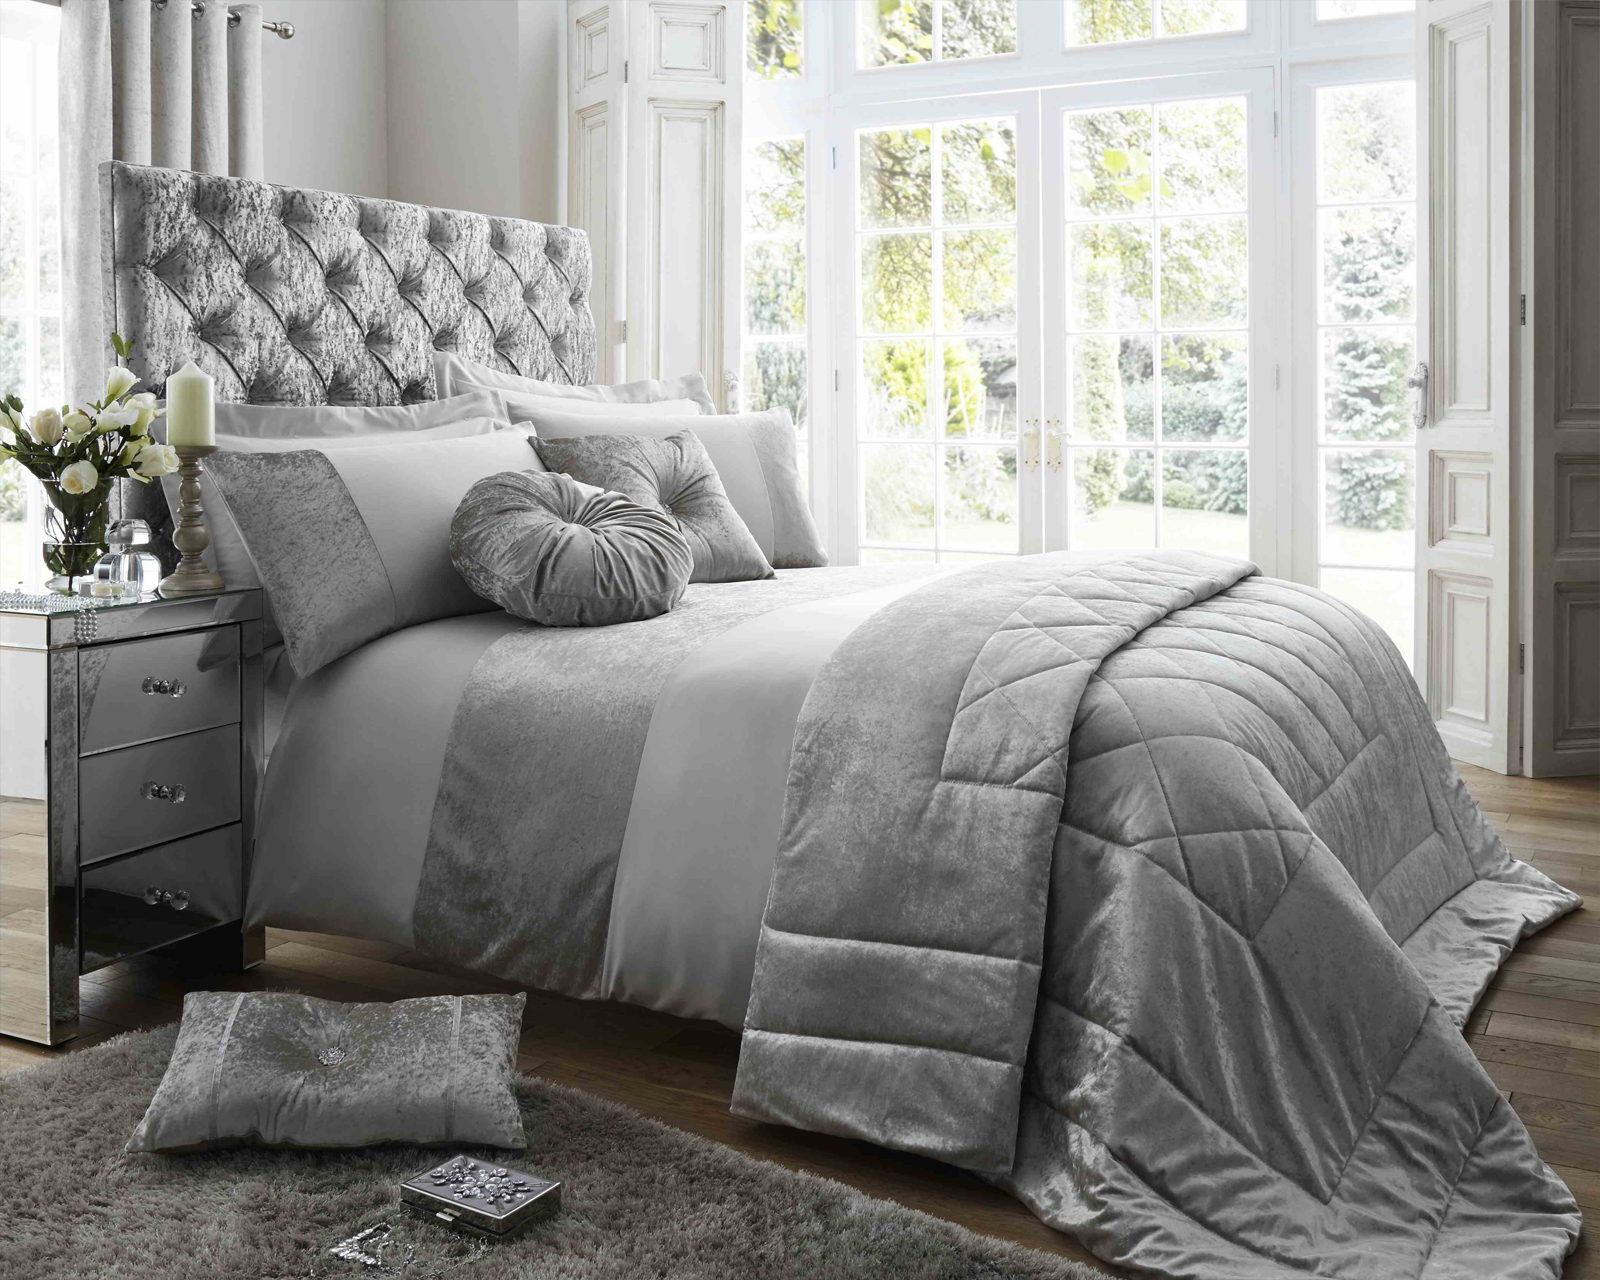 duchess silver luxury bedding range with crushed velvet. Black Bedroom Furniture Sets. Home Design Ideas